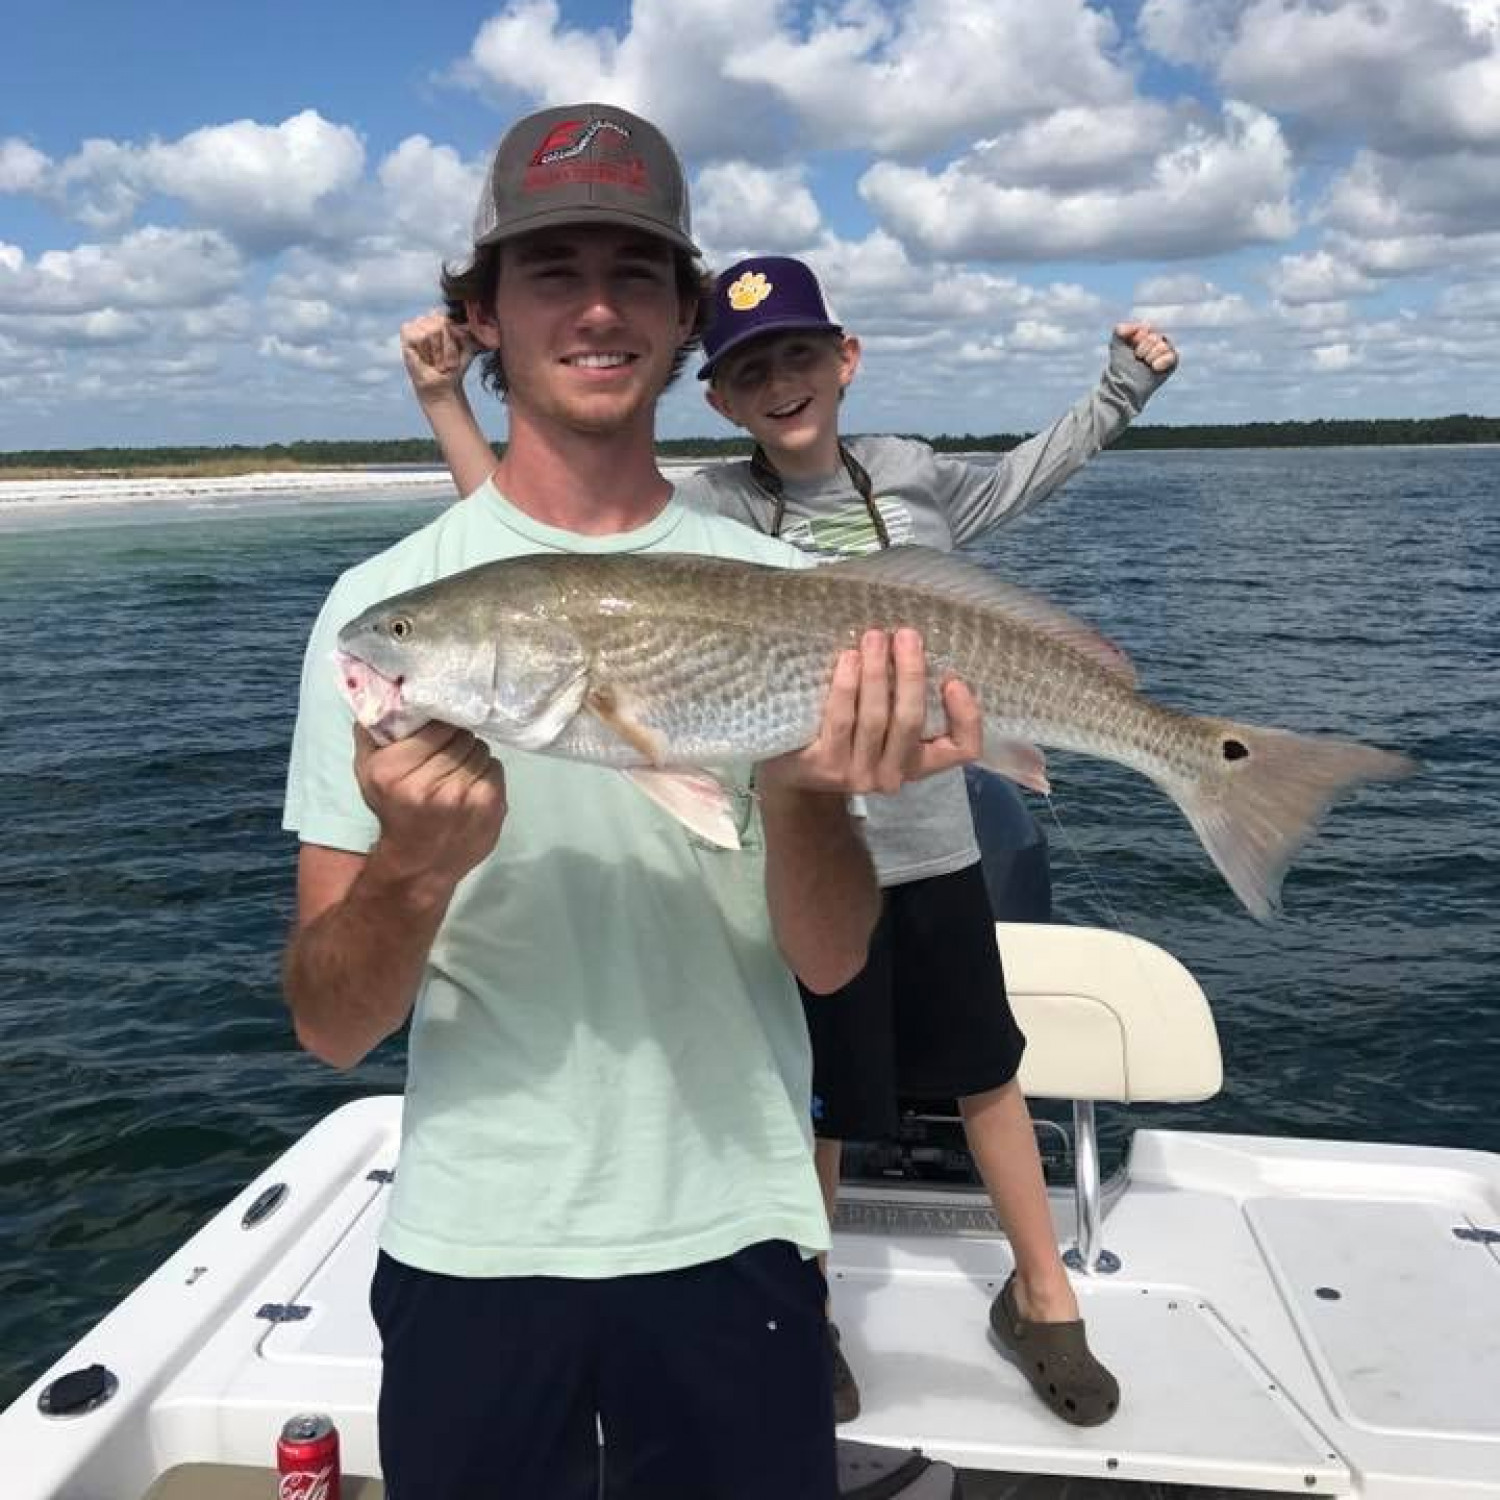 Title: Nathan's first slot Redfish - On board their Sportsman Island Bay 20 Bay Boat - Location: Panama City Florida n. Participating in the Photo Contest #SportsmanNovember2017